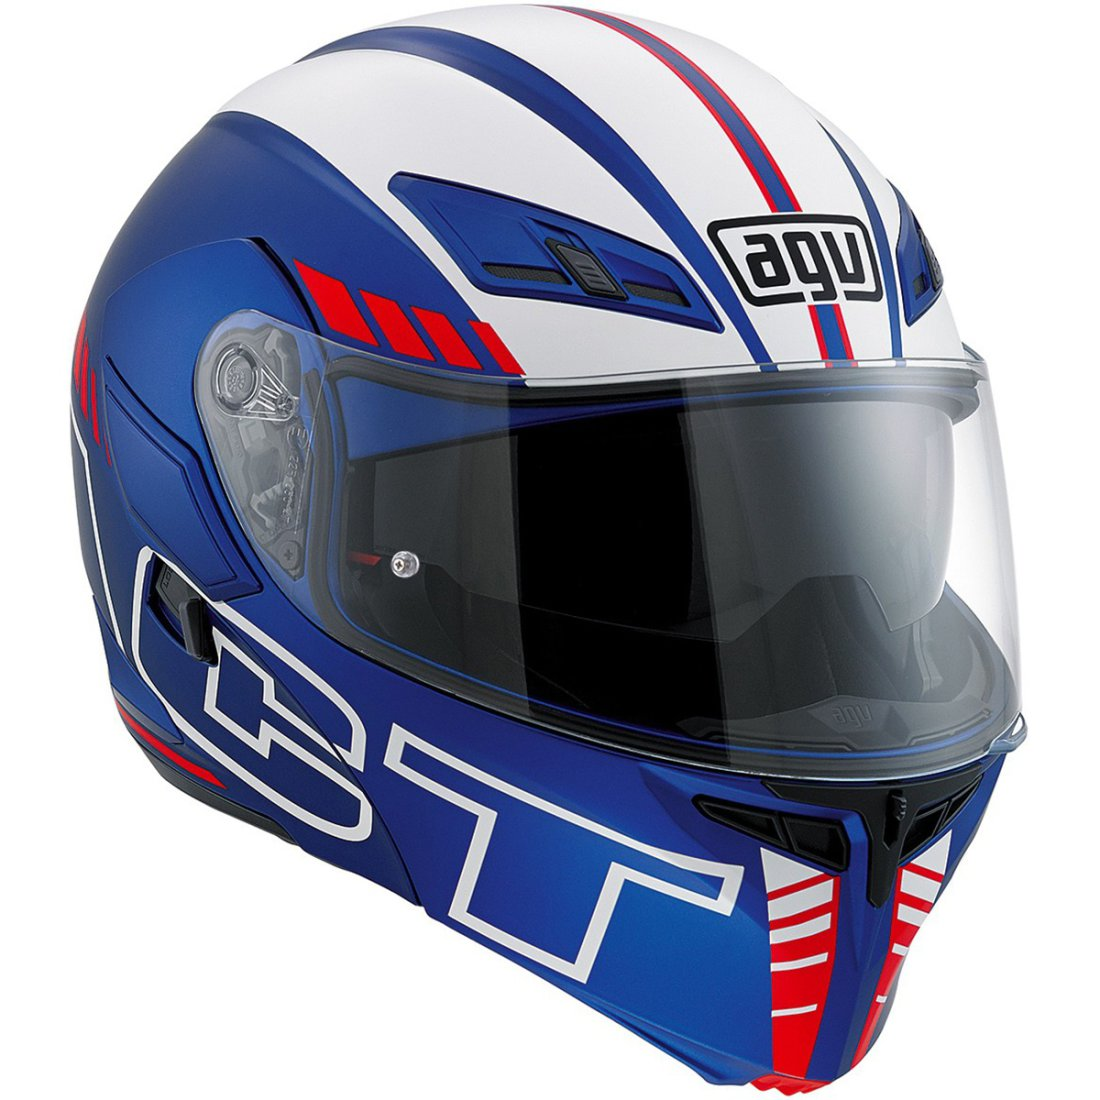 AGV Compact ST Seattle Matt Blue / White / Red Helmet